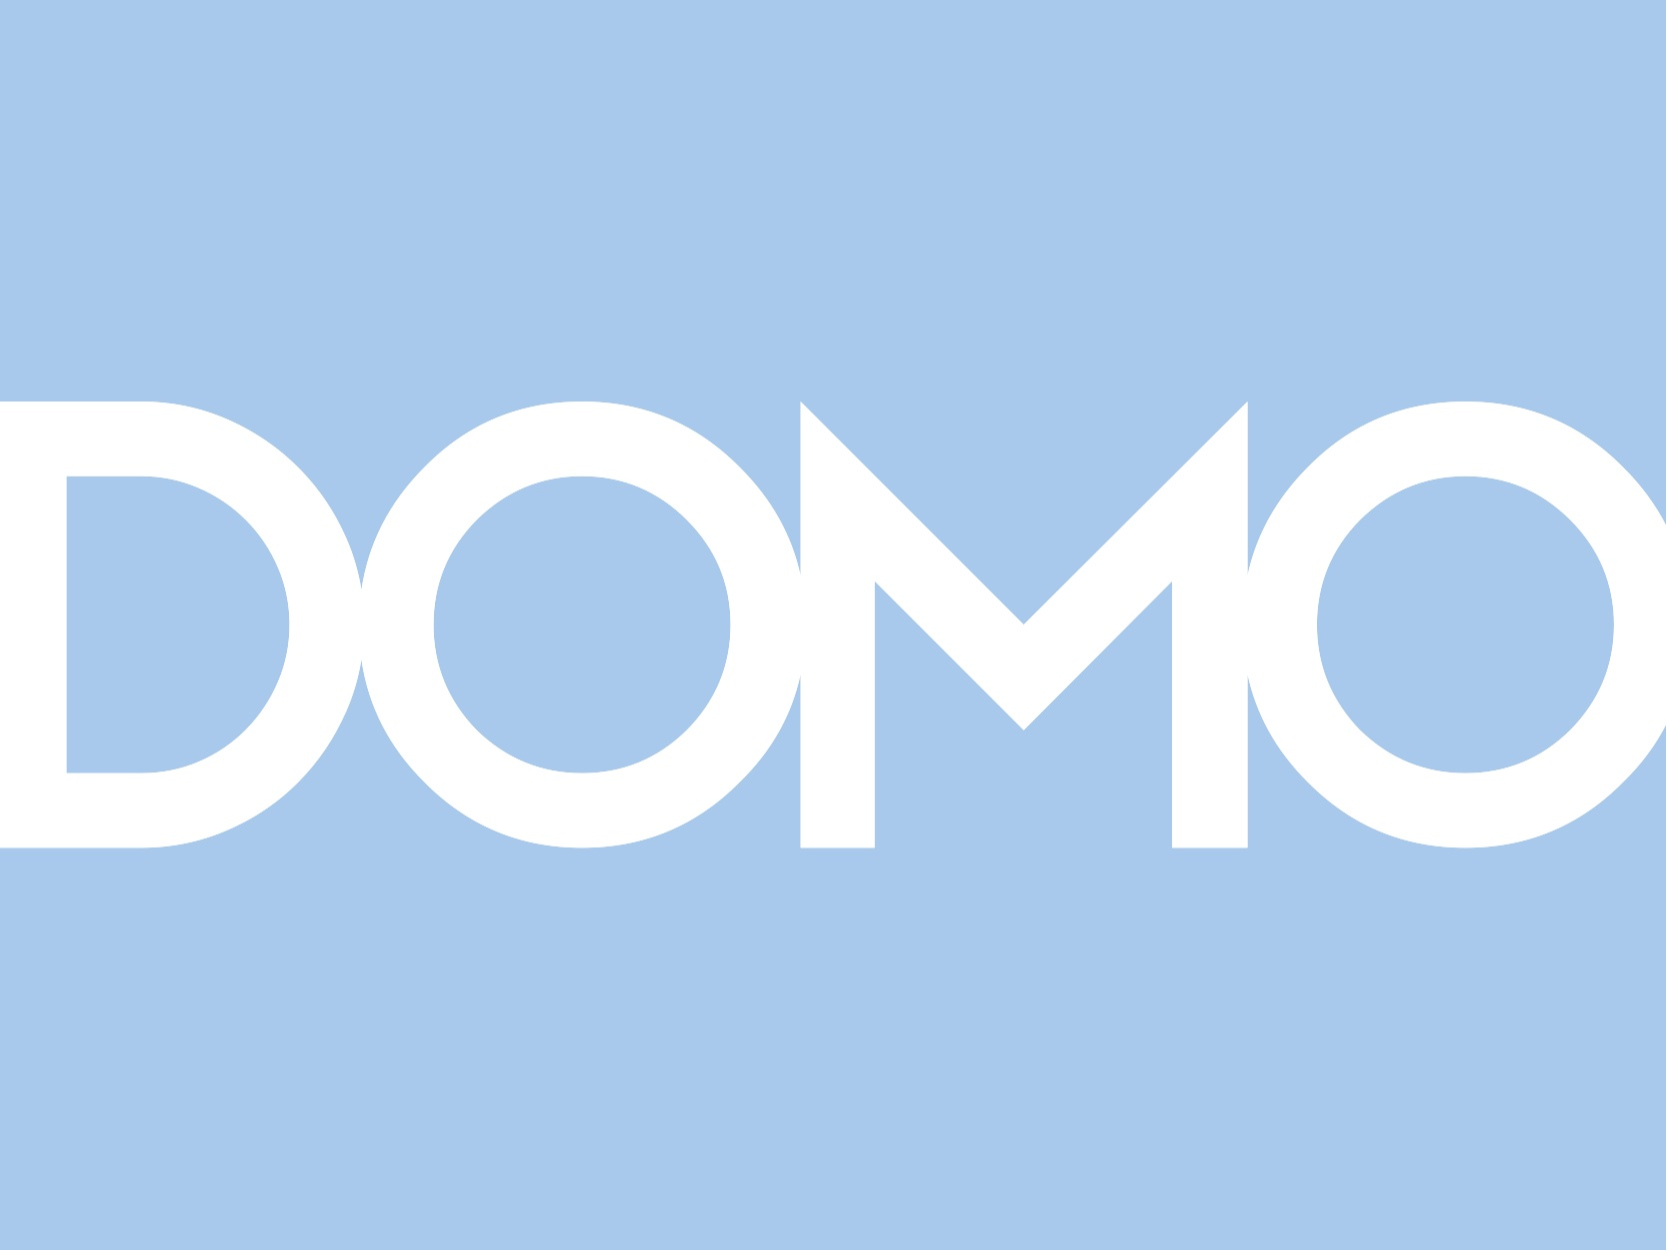 Domo-logo-feature.png